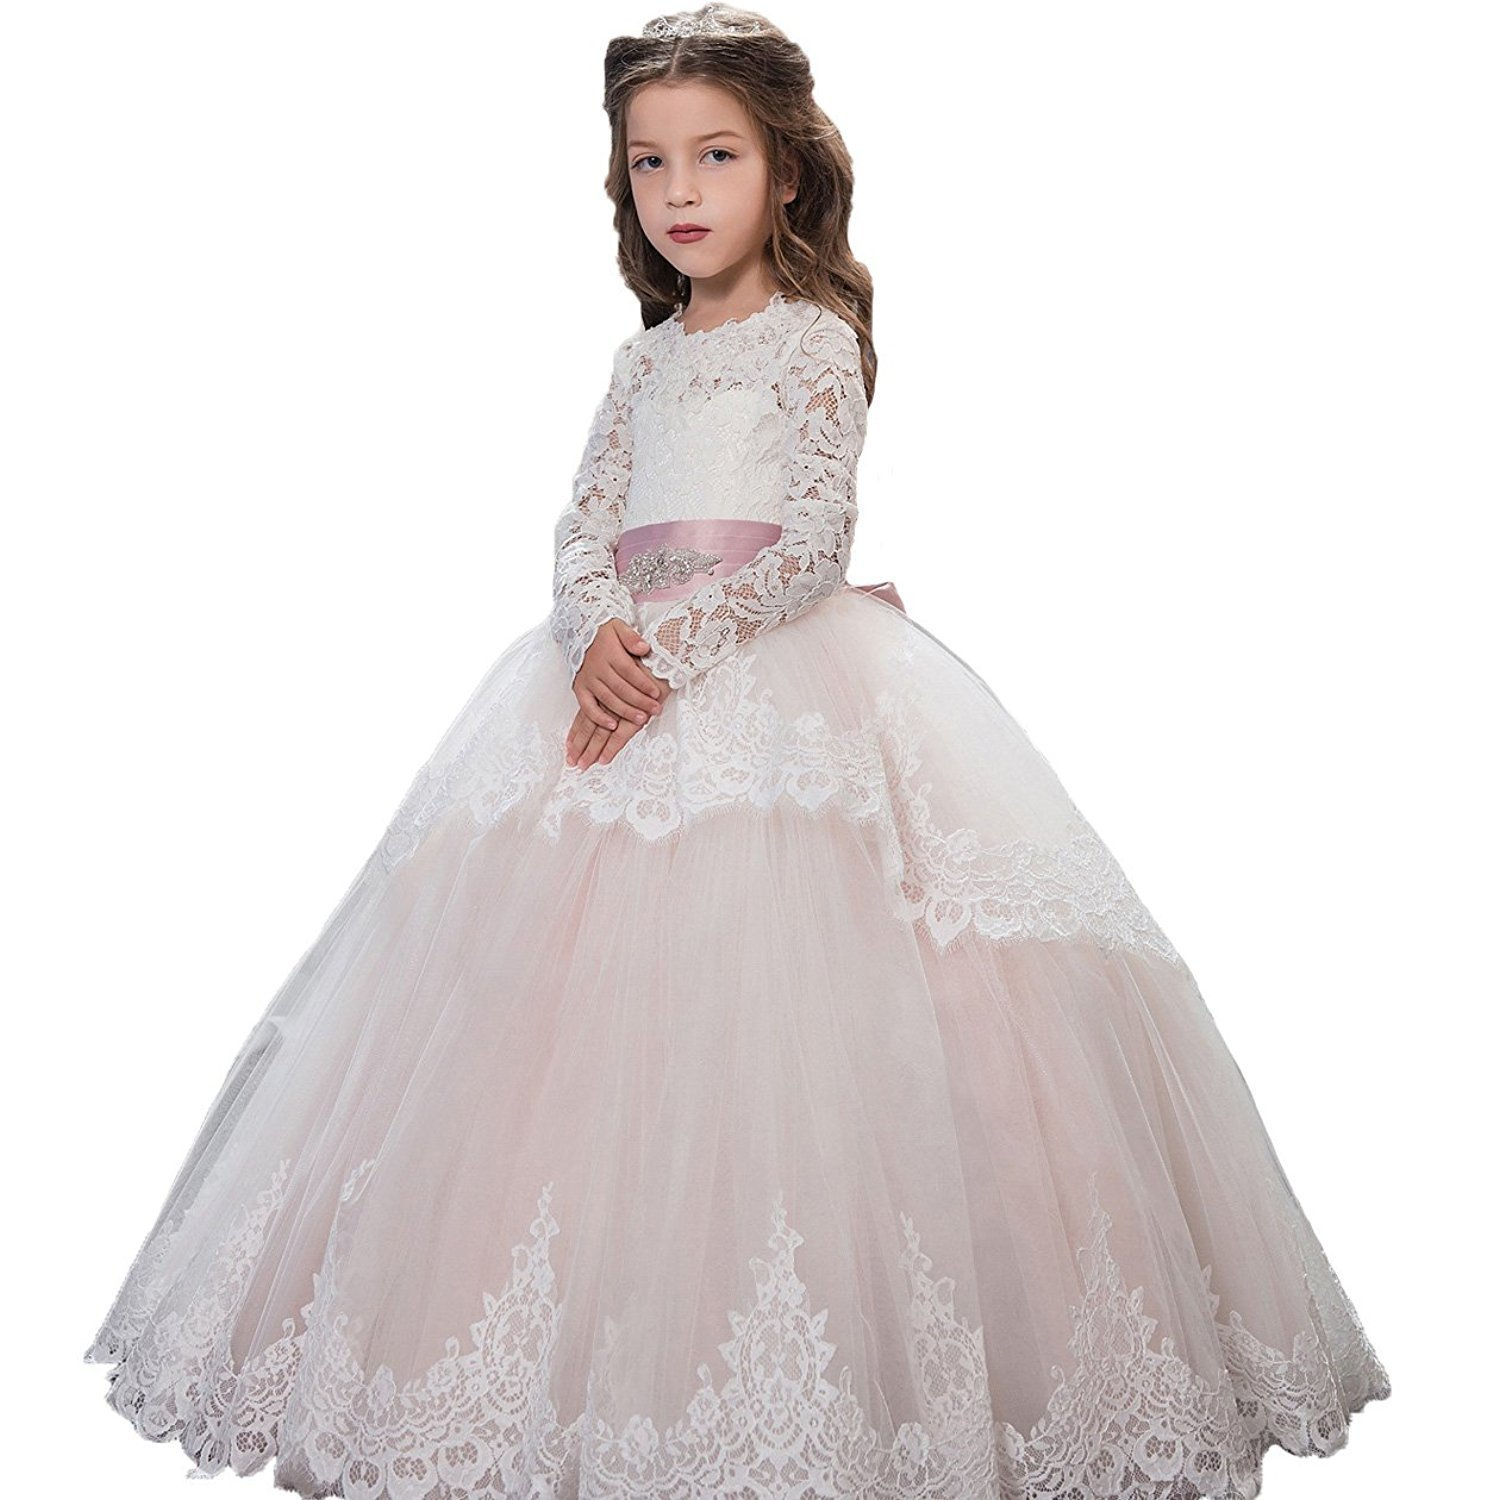 2a156ba8f62 Get Quotations · Aprildress Ivory Lace Flower Girls Dresses Vintage White  First Communion Dress